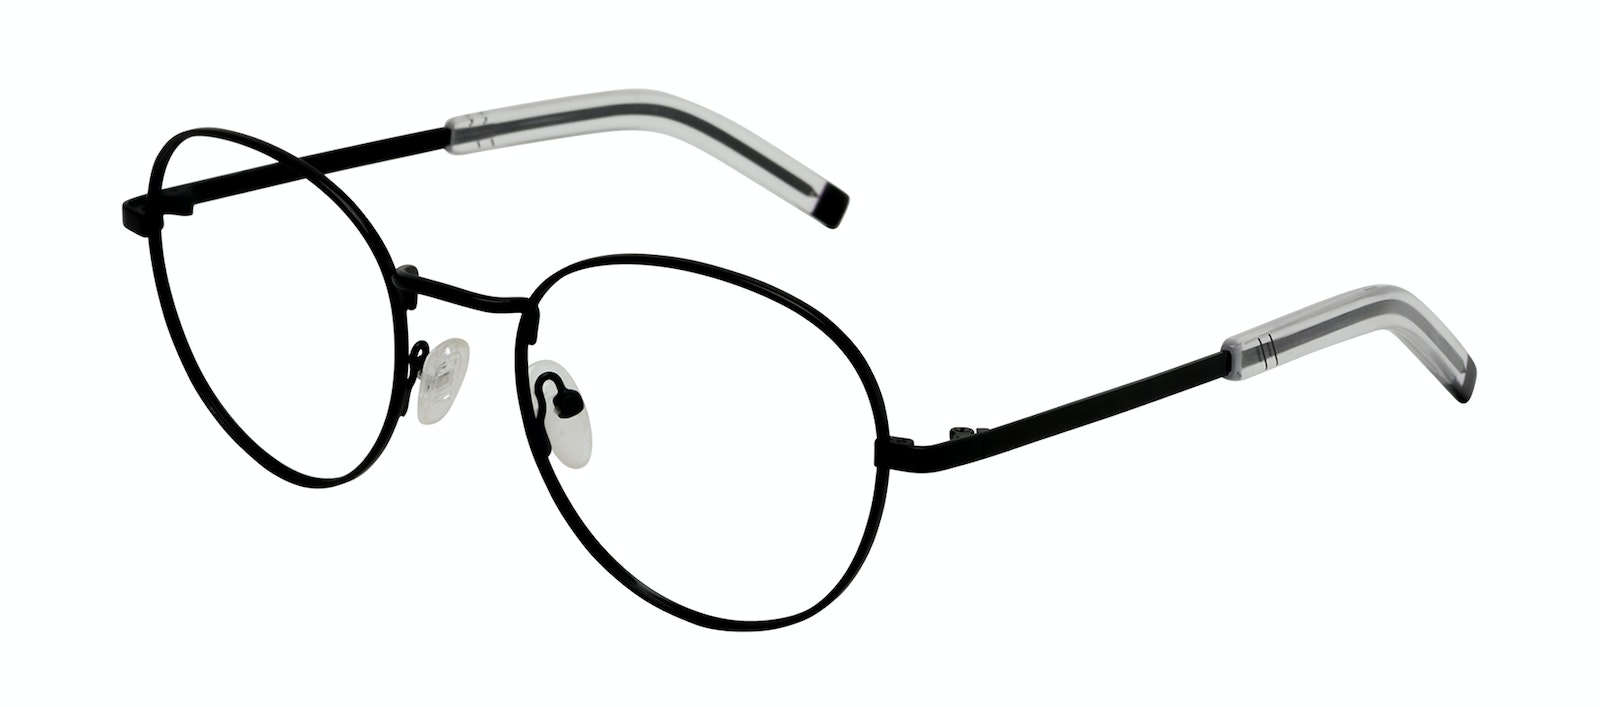 Affordable Fashion Glasses Round Eyeglasses Men Lean L Black Tilt